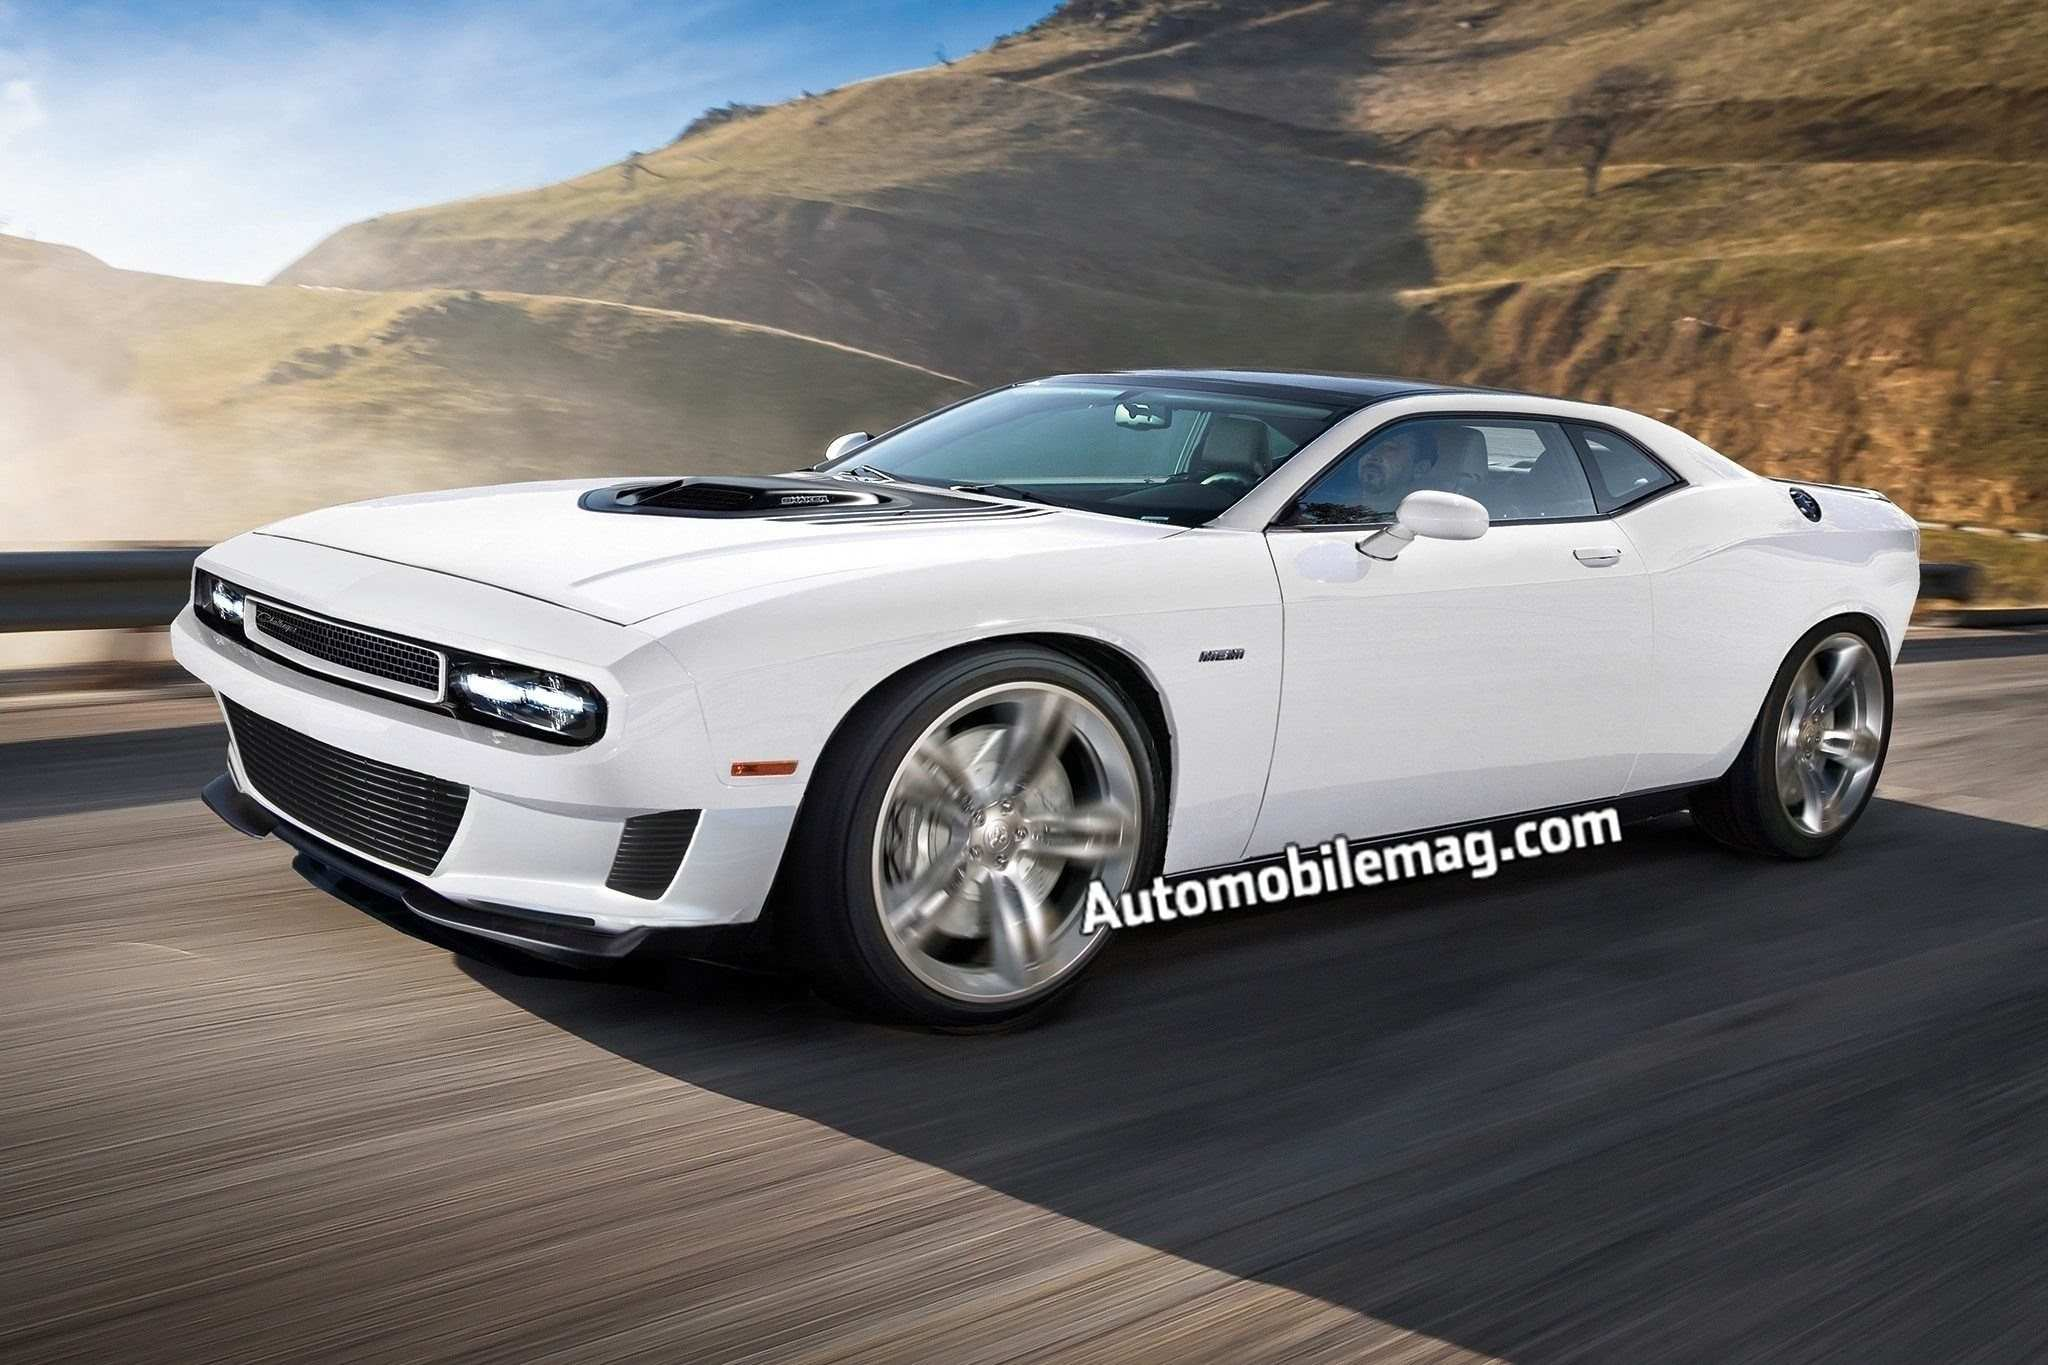 20 Best What Will The 2020 Dodge Challenger Look Like Release Date